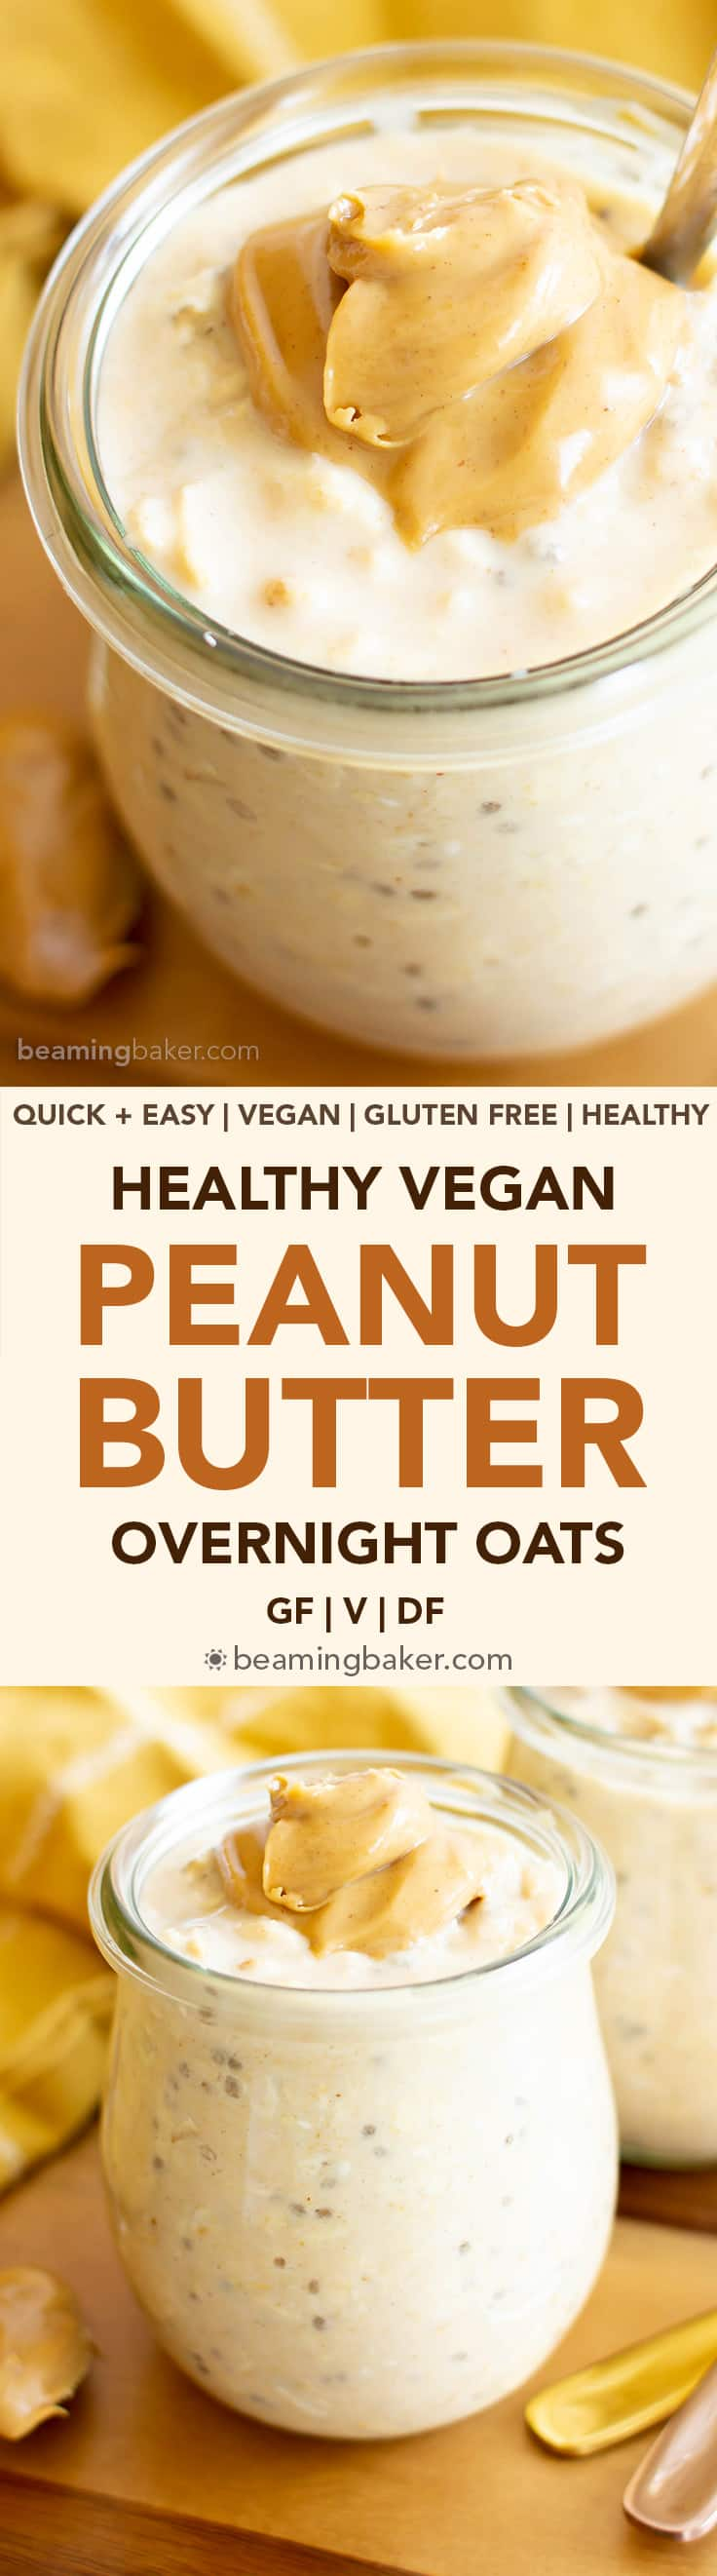 Peanut Butter Overnight Oats Recipe (Vegan, GF): easy vegan overnight oats with almond milk and peanut butter! Healthy overnight oats that taste like peanut butter cookies! Gluten Free, Dairy-Free, Refined Sugar Free. #Healthy #OvernightOats #PeanutButter #Breakfast #Vegan | Recipe at BeamingBaker.com